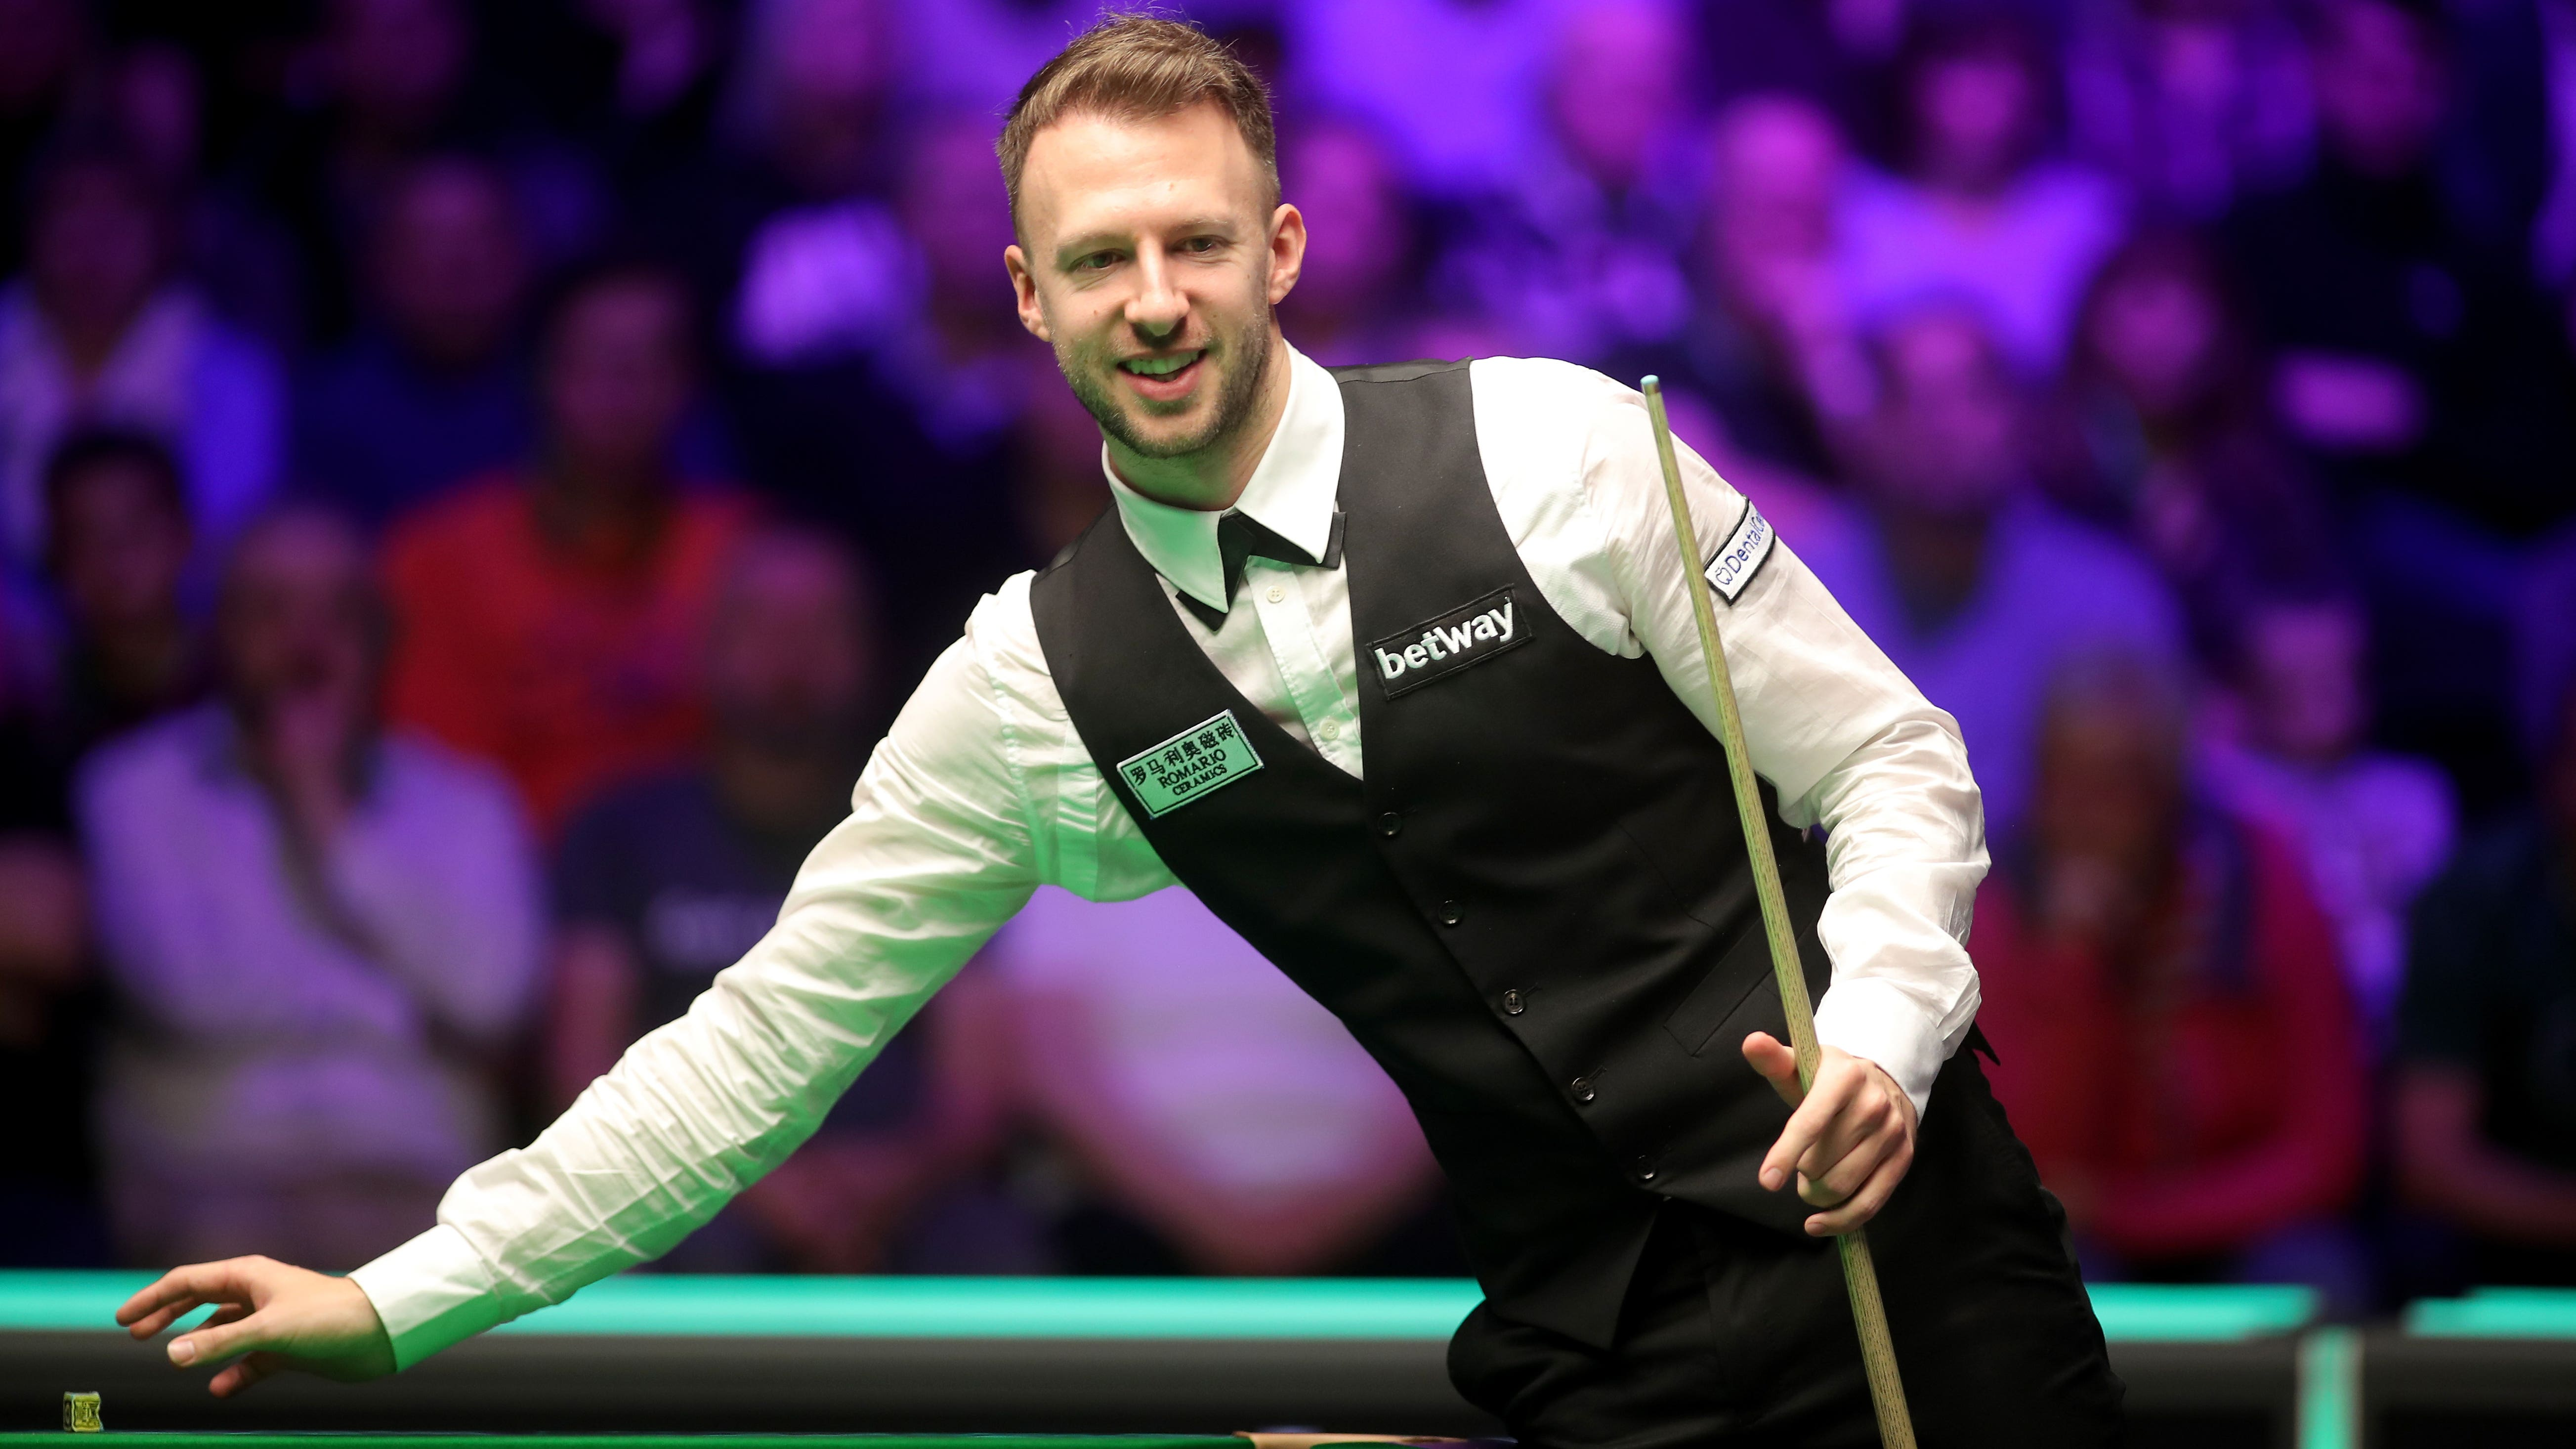 Judd Trump Beats Jack Lisowski To Successfully Defend His German Masters Crown Bt Sport